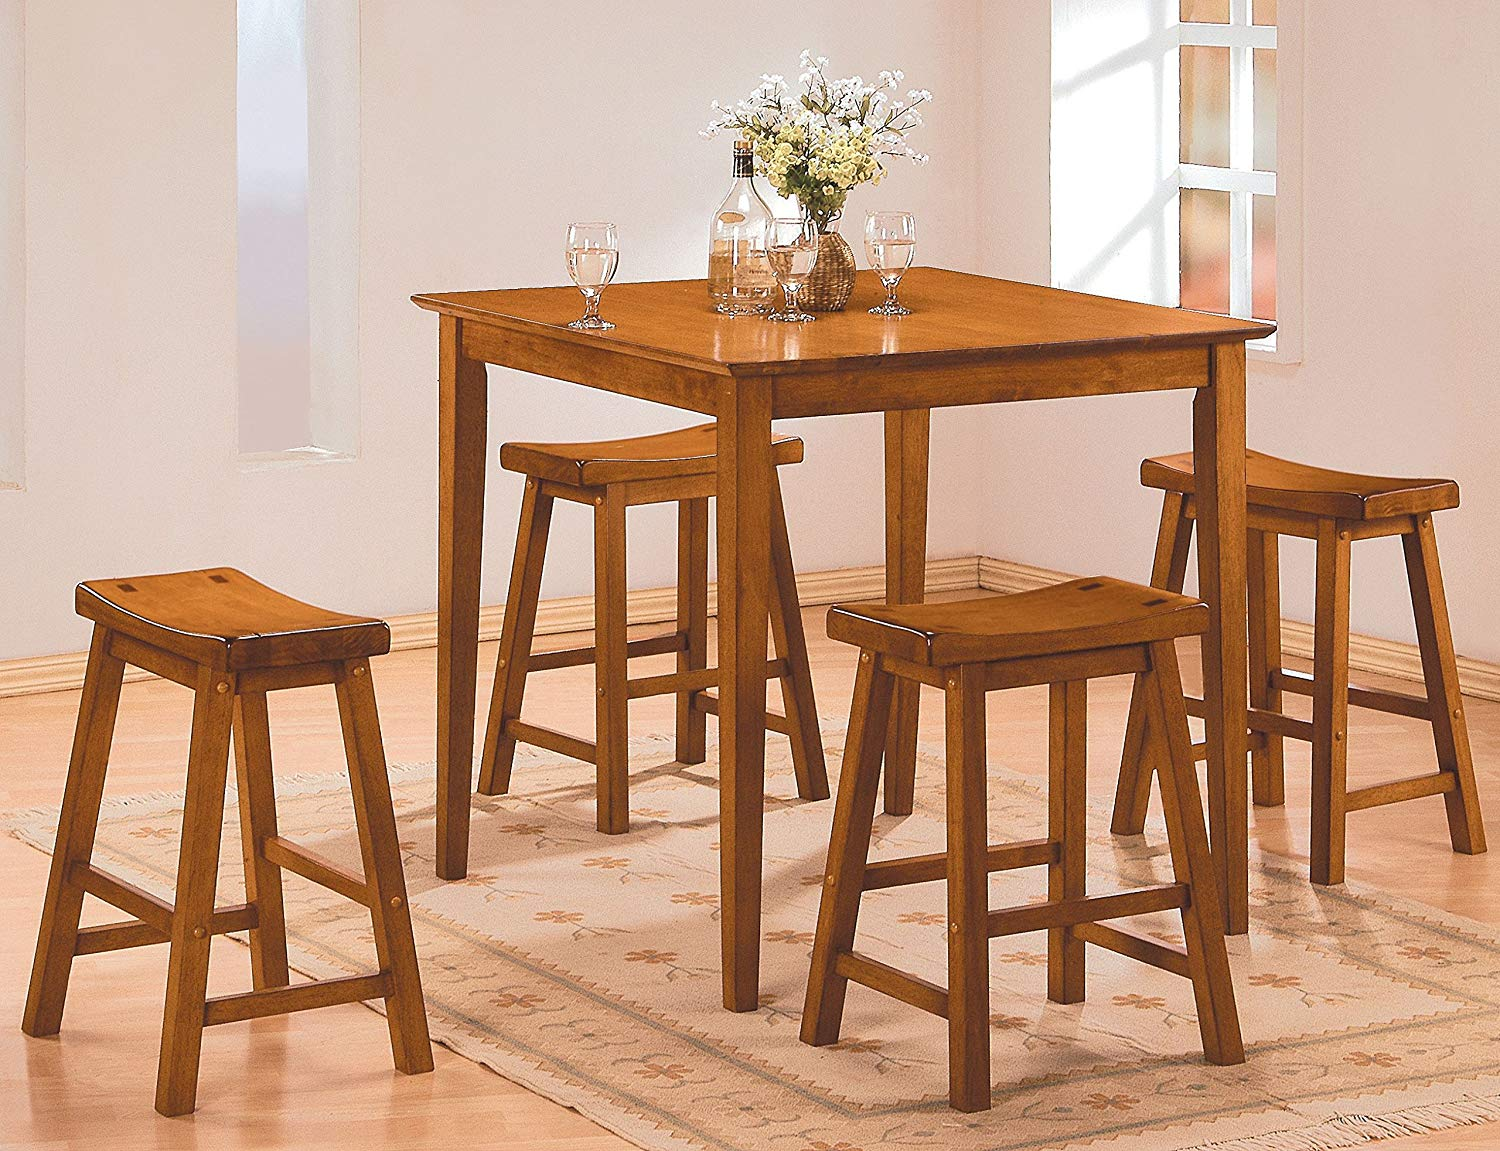 Benzara Wooden 5-Piece Counter Height Dining Set of Table & Stool, Oak Brown